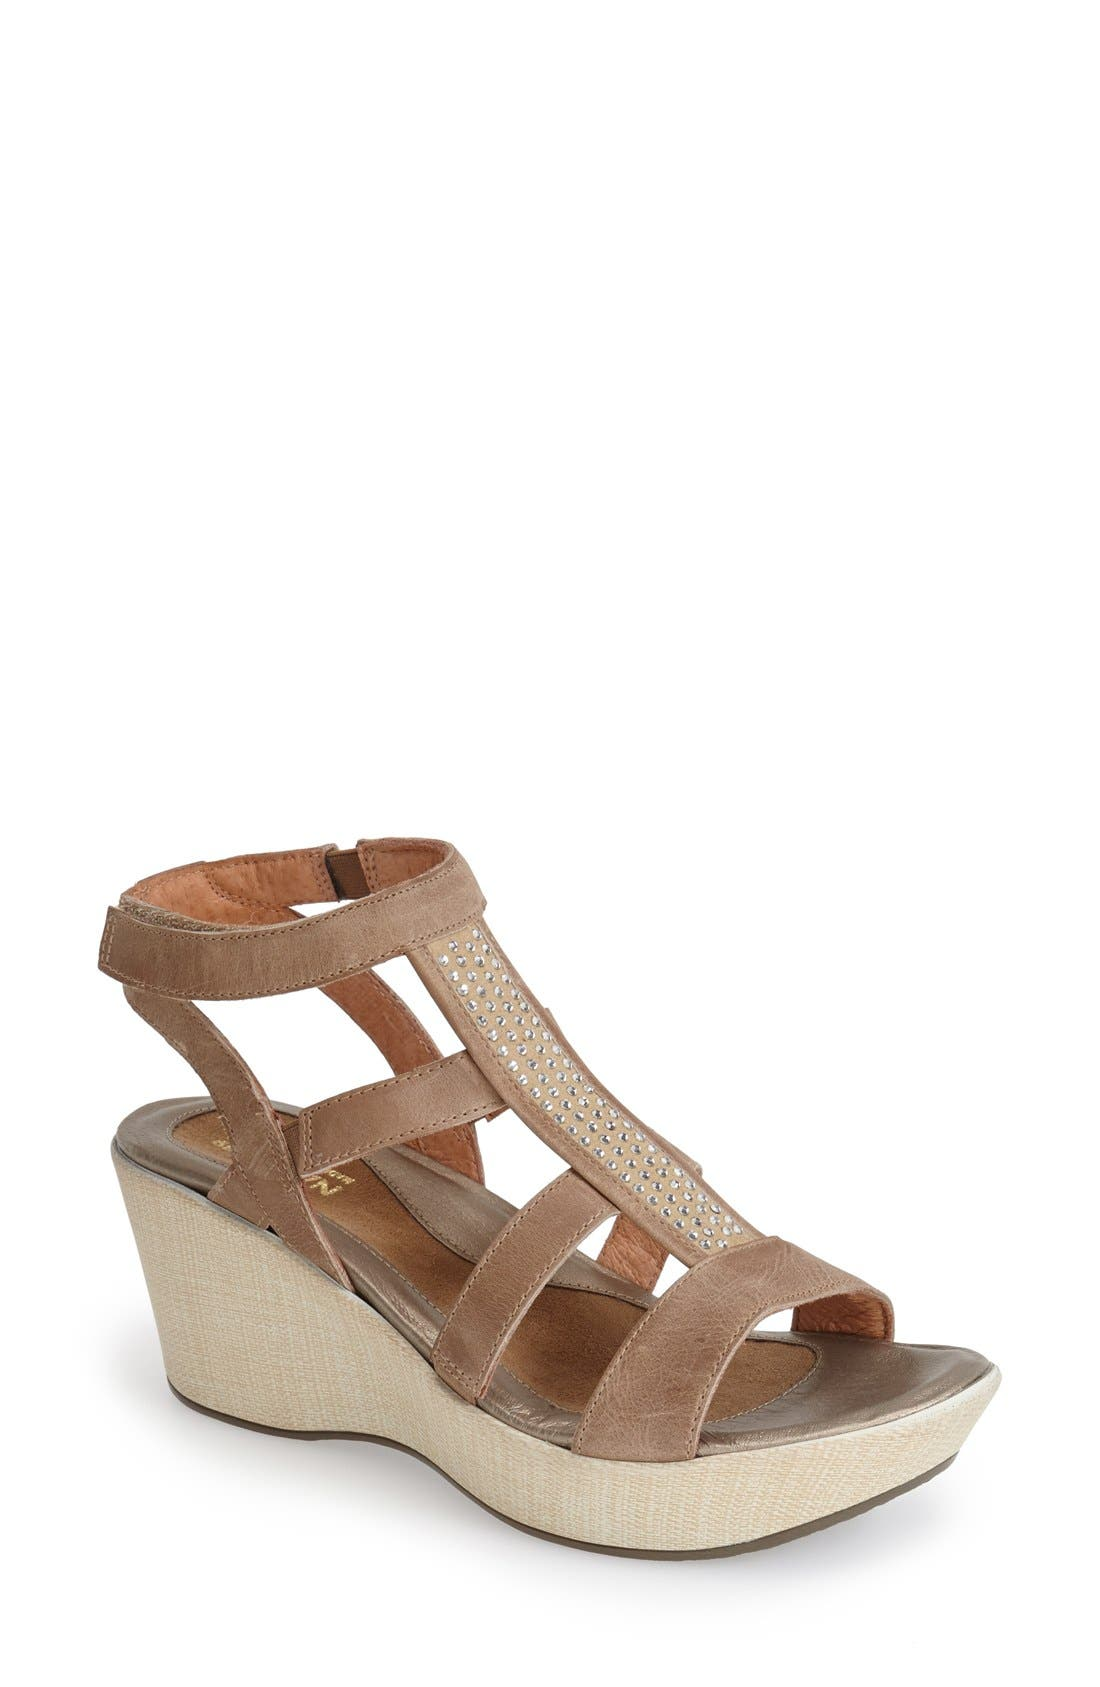 'Mystery' Platform Wedge Sandal,                             Main thumbnail 1, color,                             Beige